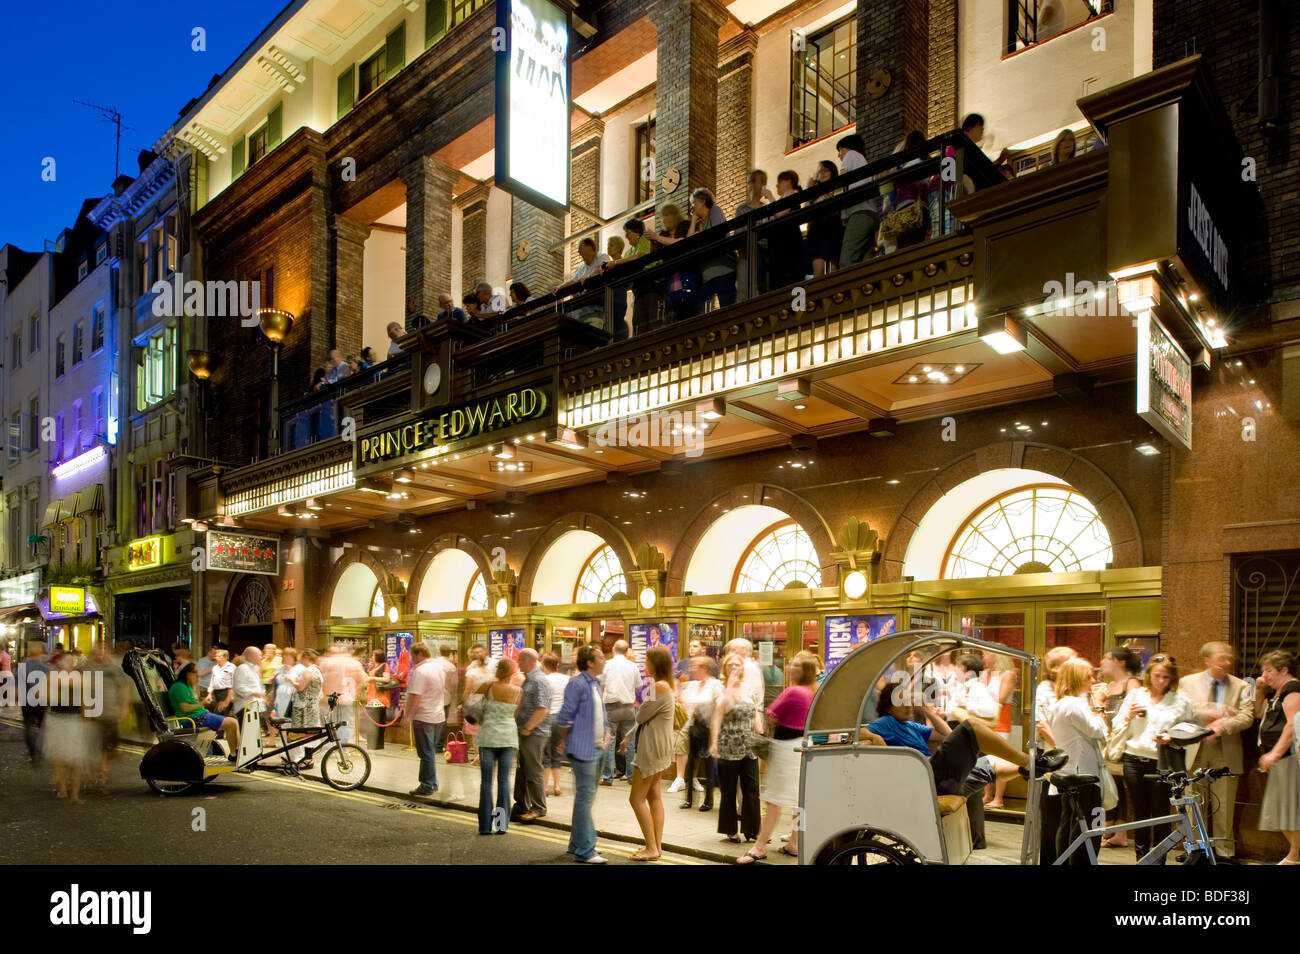 Prince Edward Theatre On Old Compton Street W1 London United Kingdom